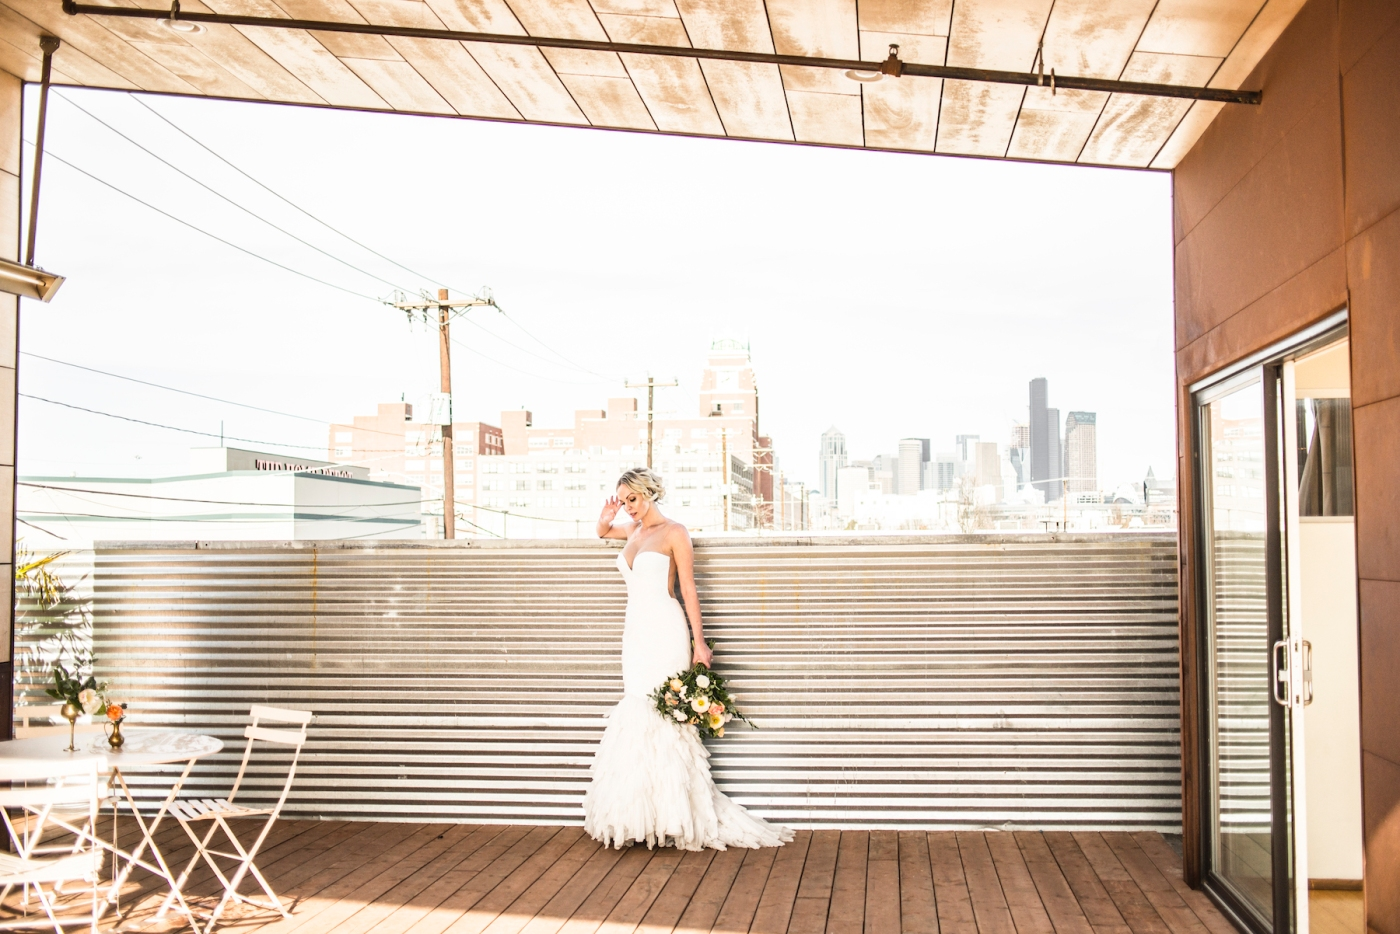 photography_by_jane_speleers_2017_wedding_show_i_do_sodo_within_designed_by_melody_davis